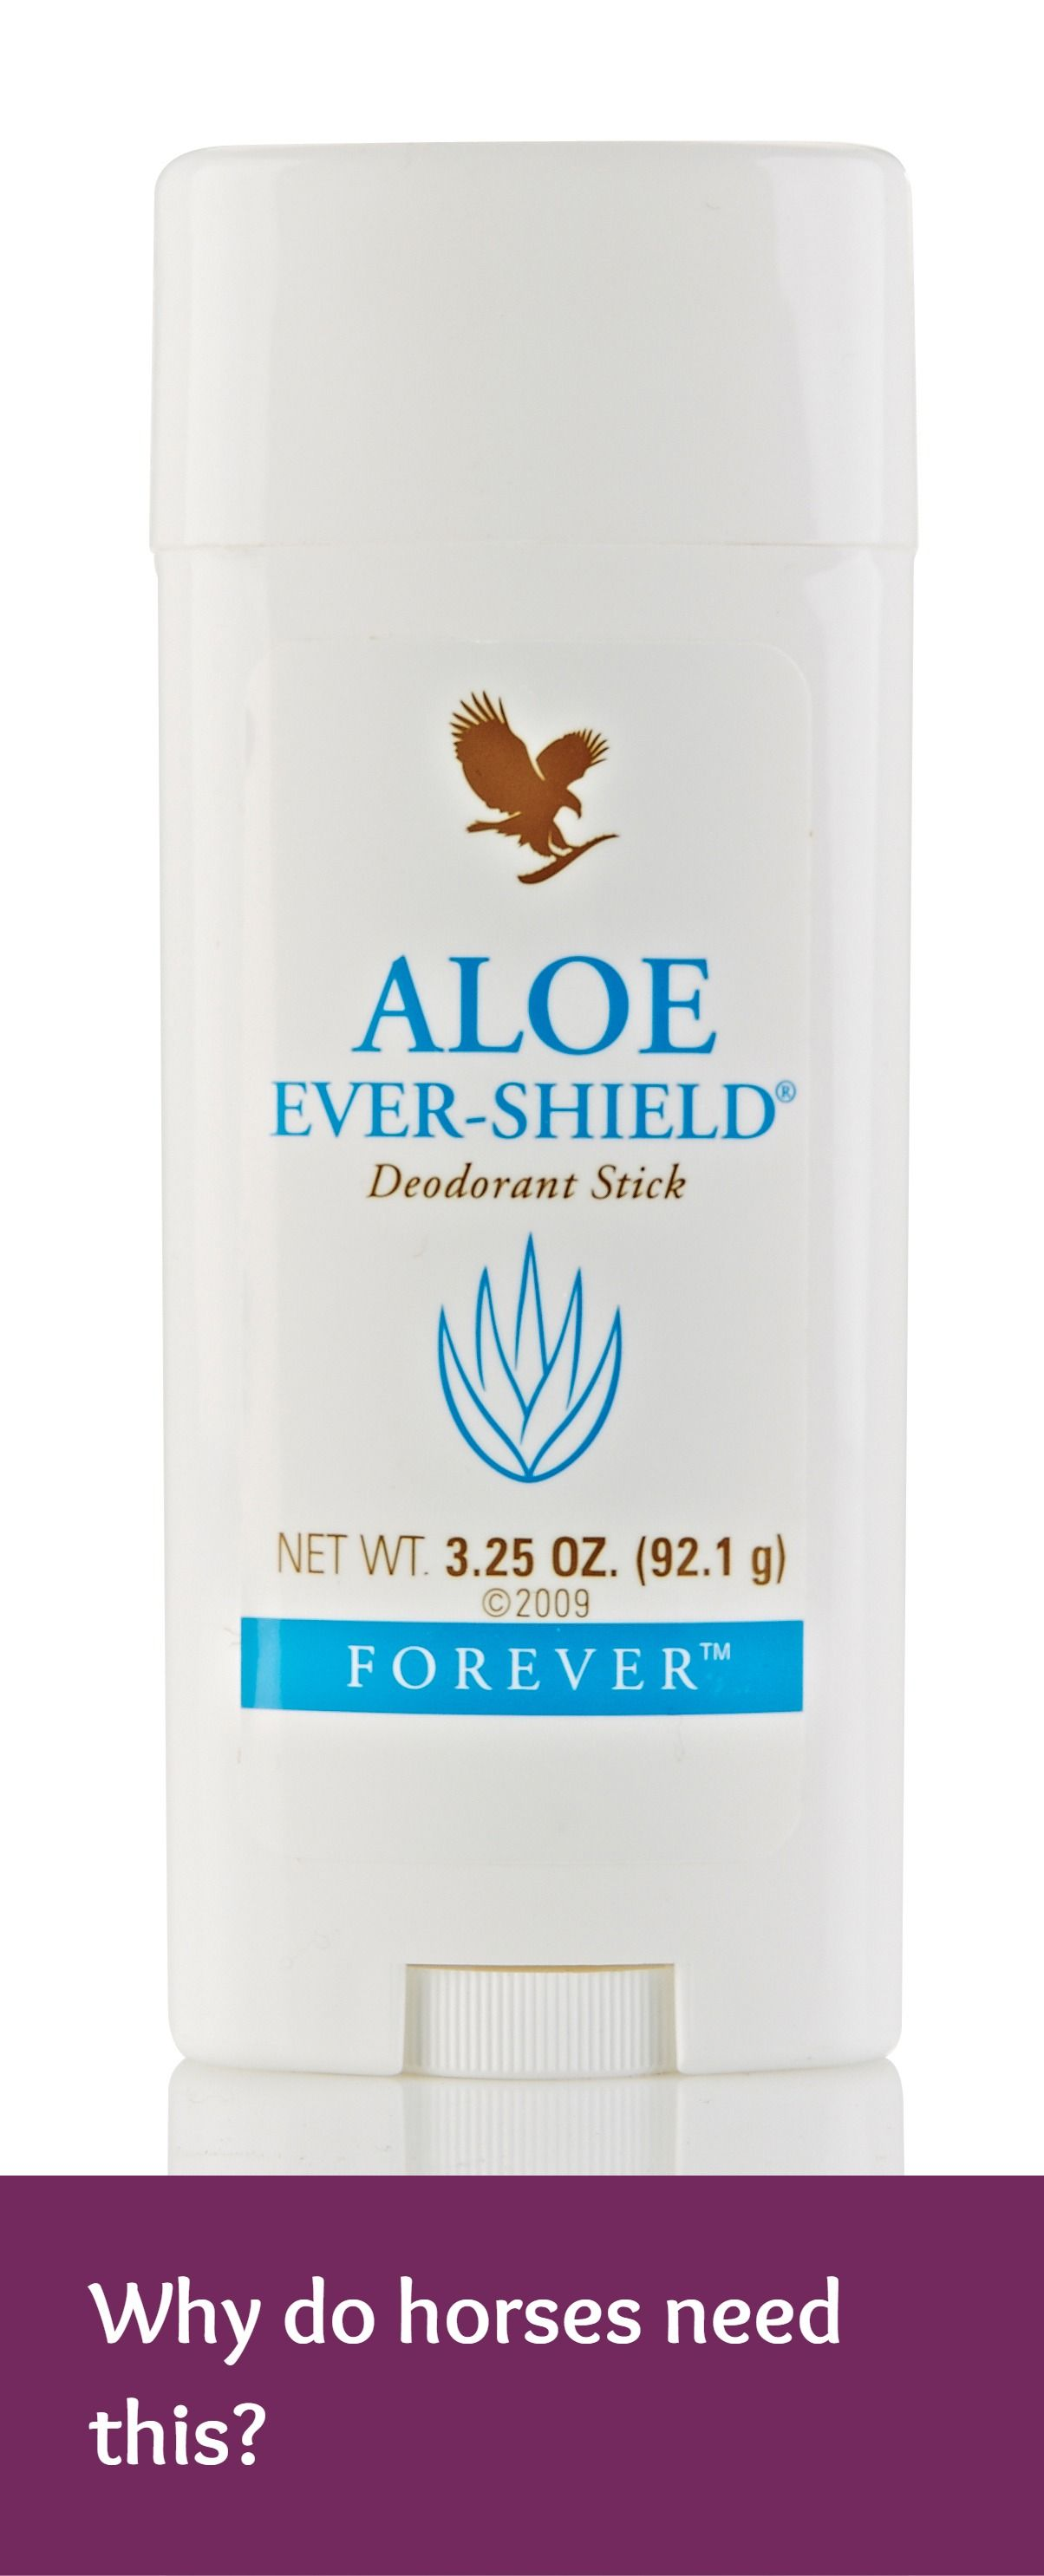 Who knows why horses need aloe vera deodorant, especially in the summer?  Well it's not to put in their armpits!  Lots of horse owners put the deodorant round their horses' nose to help keep flies away.  Try it (it's good for humans too, just not round the nose!).